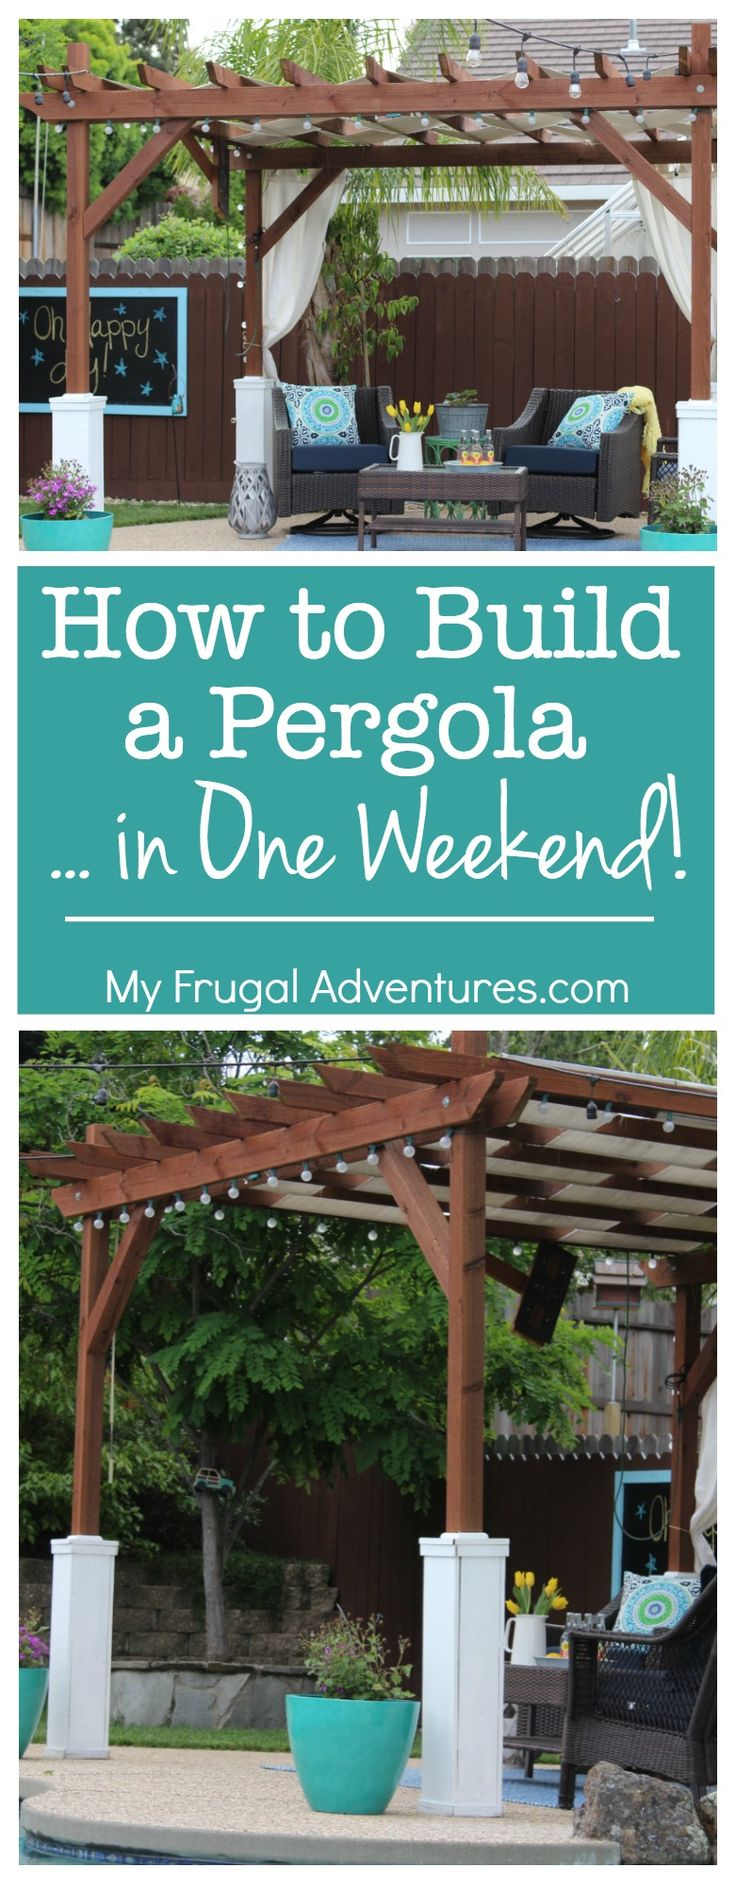 how to build a pergola pergolas backyard and yards